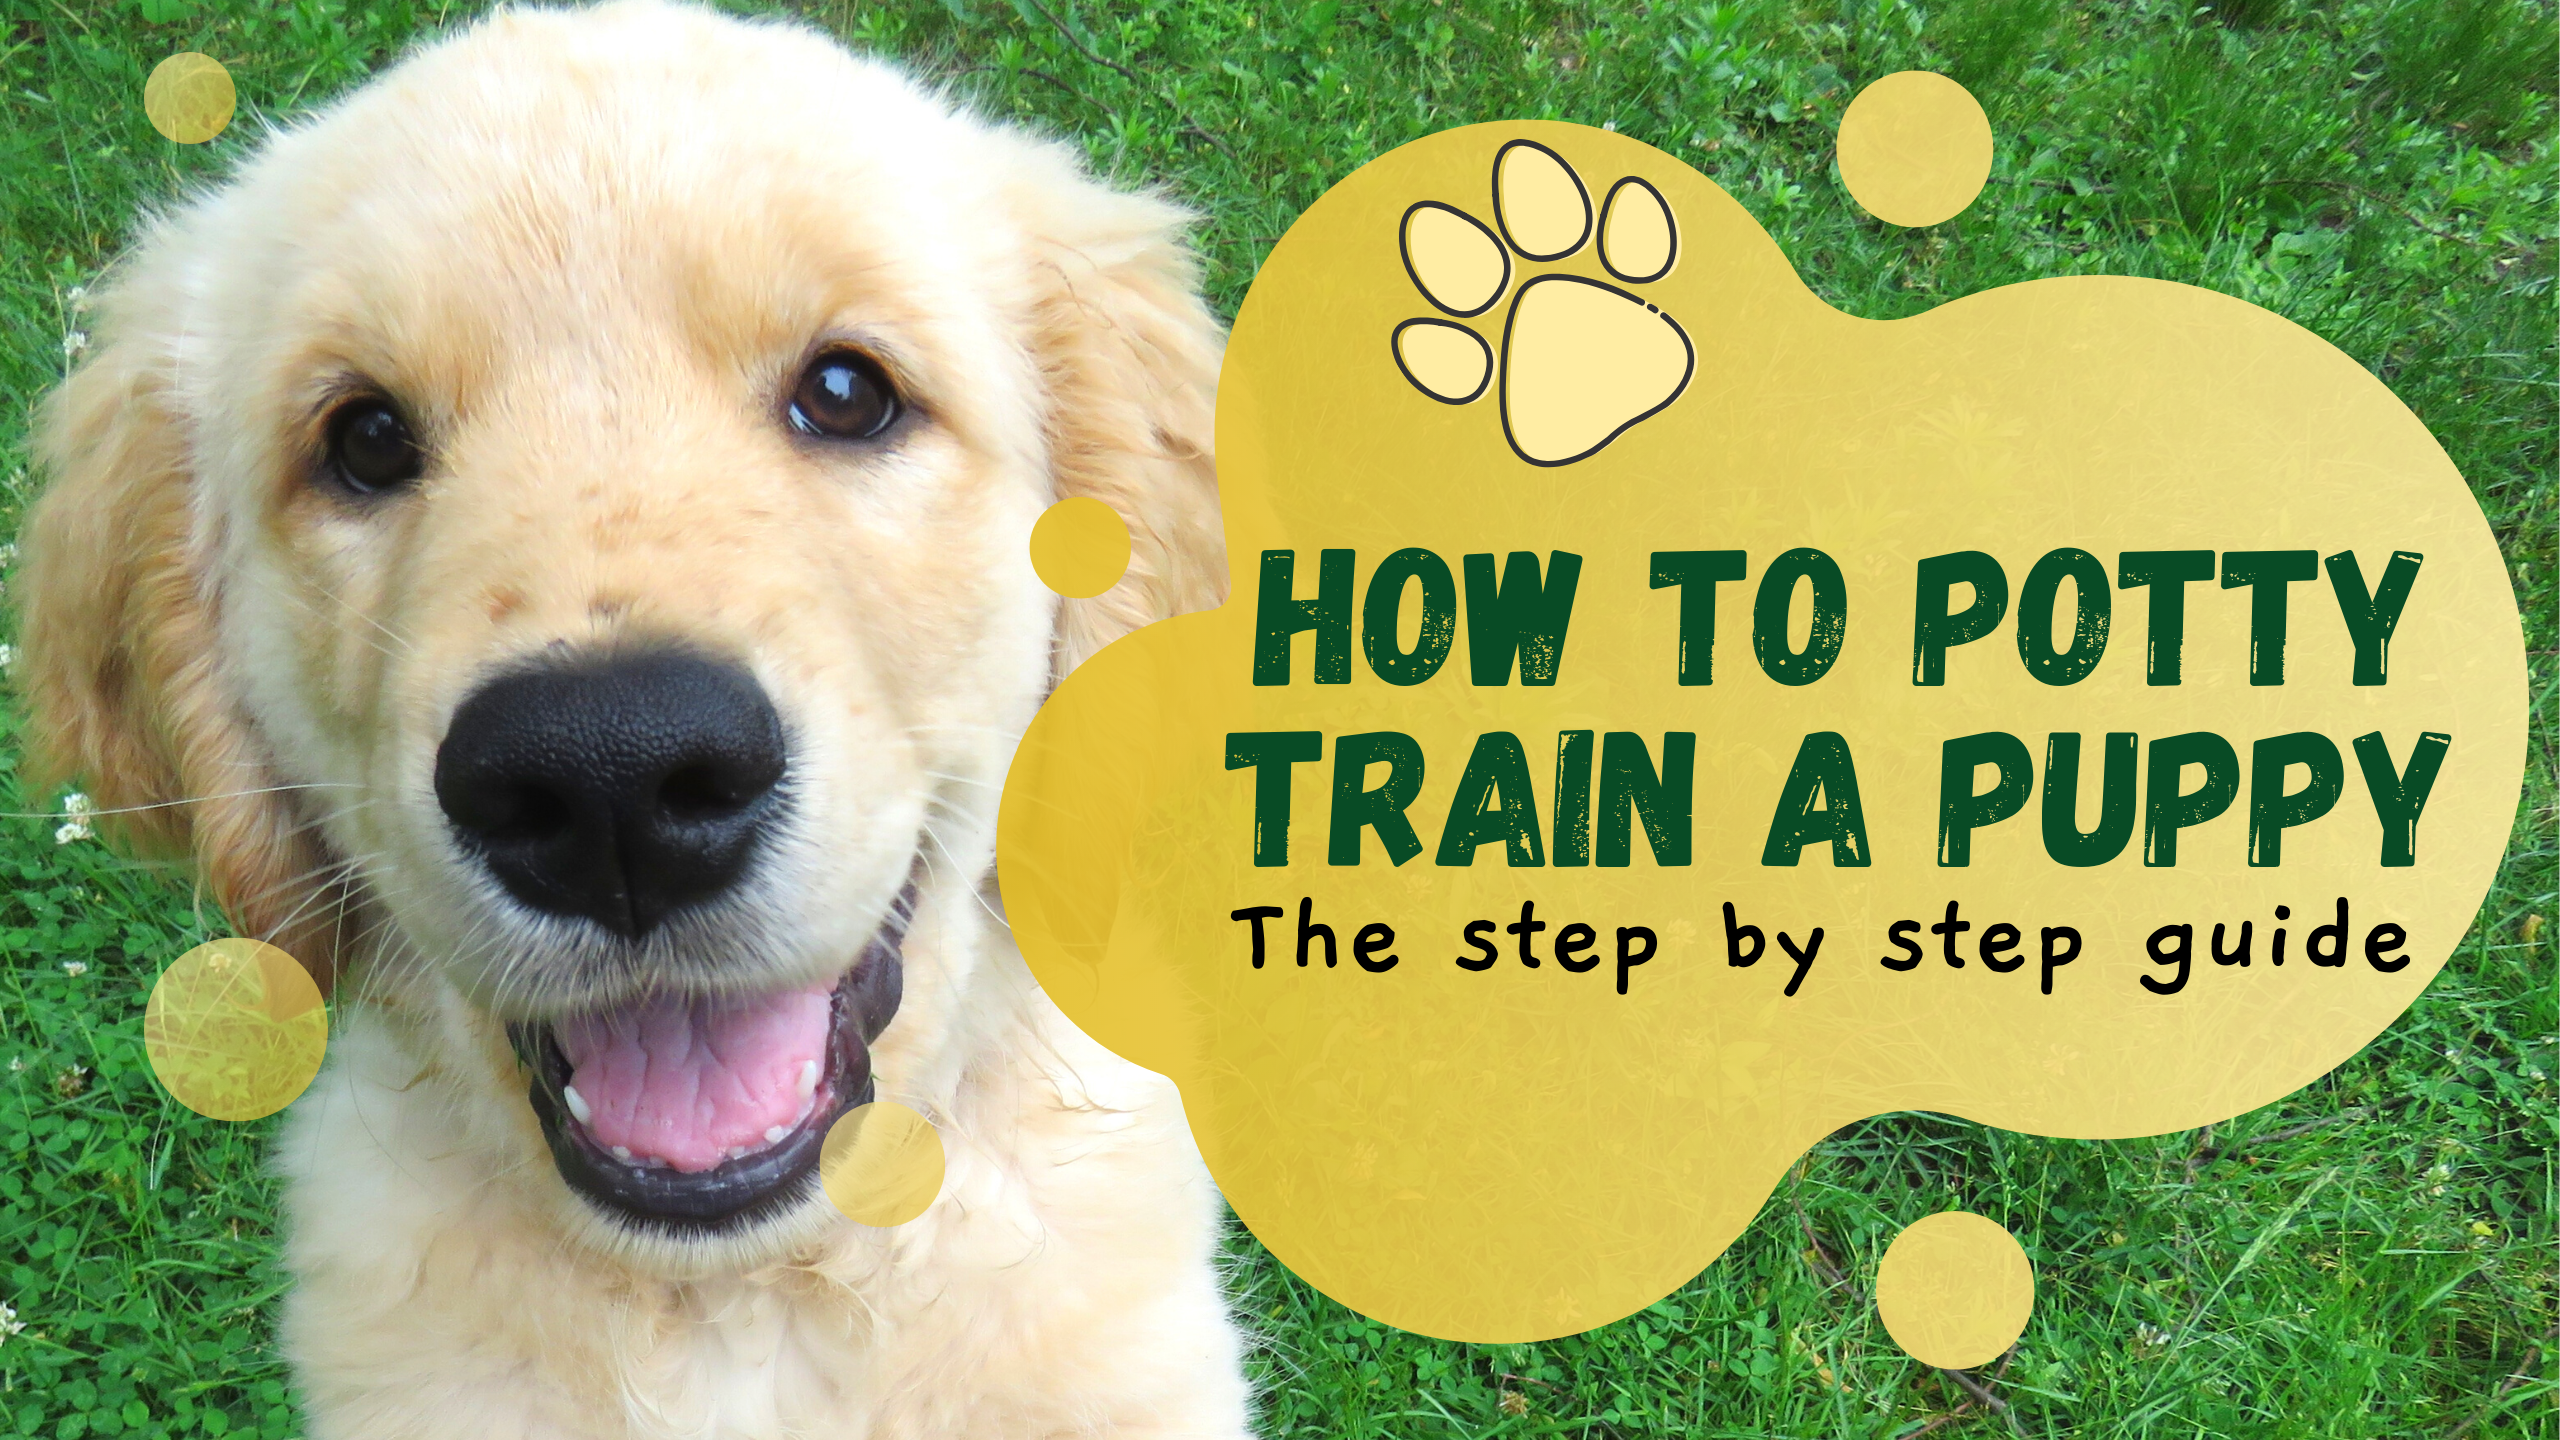 The Only Guide You Need For Potty Training Your New Puppy By Pawcessorize Pet Supplies Online Medium